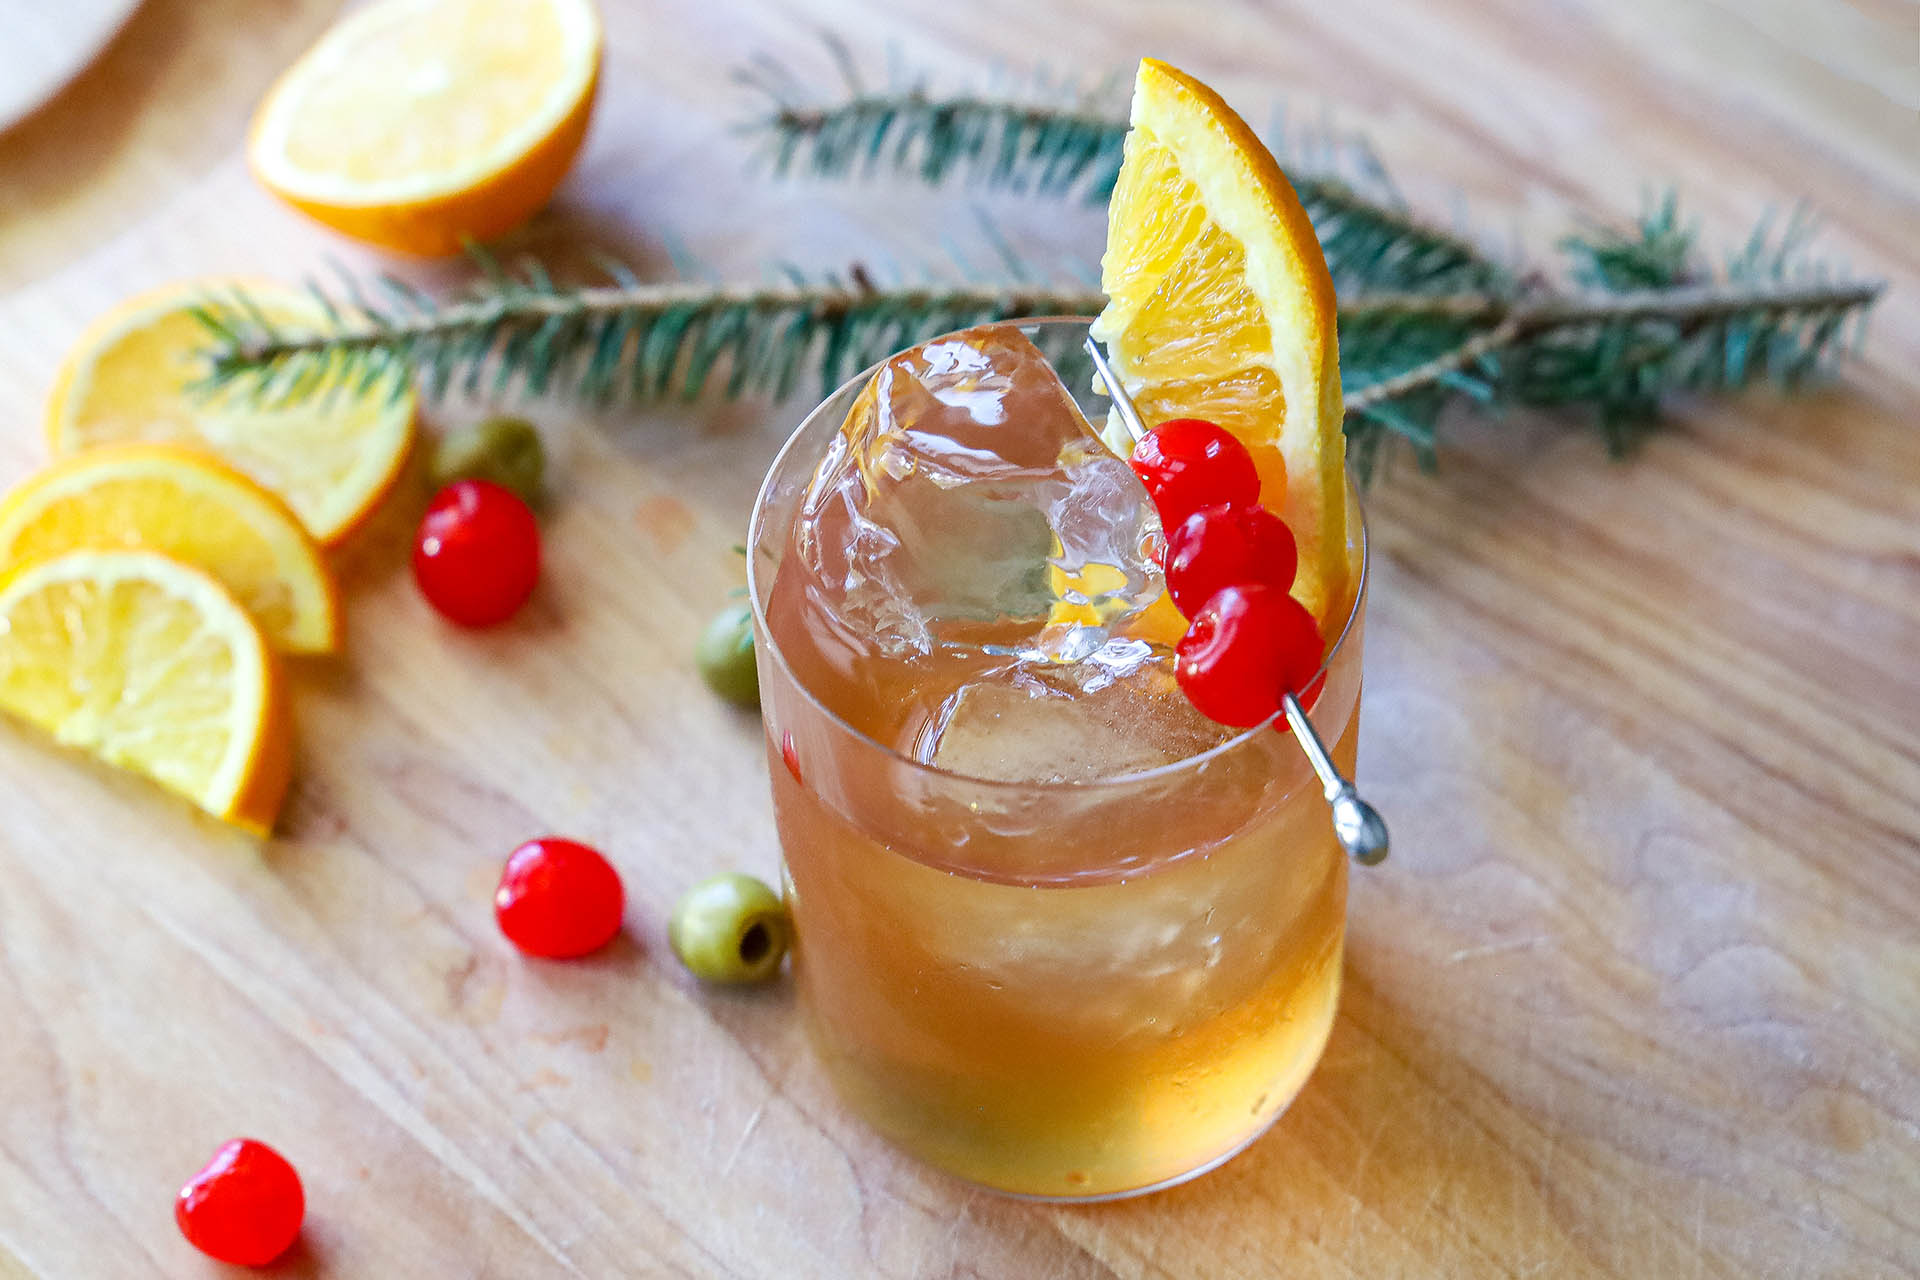 The Wisconsin Old Fashioned Cocktail Recipe photo